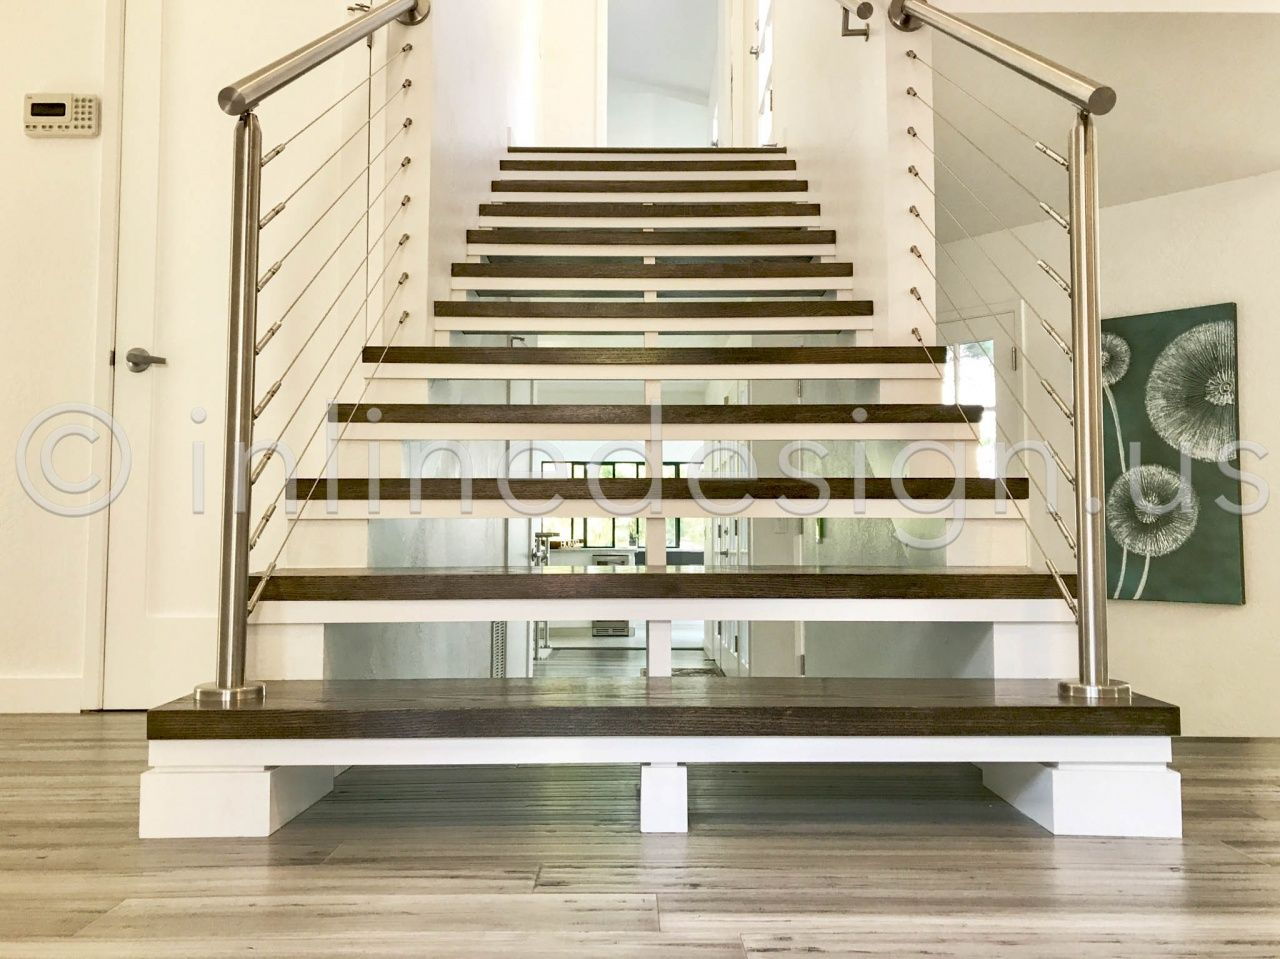 Outdoor Stair Railing Installers Near Me in 2020 | Outdoor ...